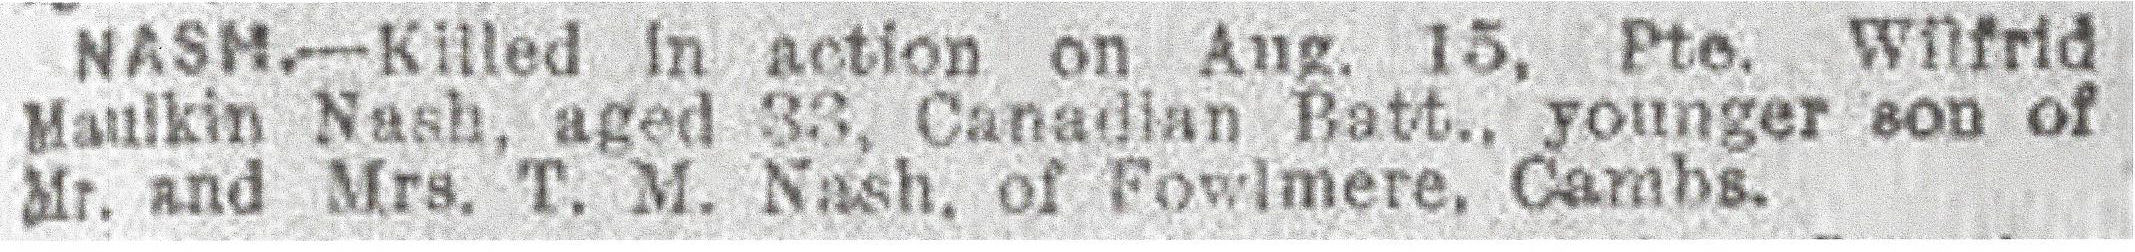 Newspaper Clipping– Newspaper clipping from the Daily Telegraph of August 30, 1917. Image taken from web address of http://www.telegraph.co.uk/news/ww1-archive/12214800/Daily-Telegraph-August-30-1917.html